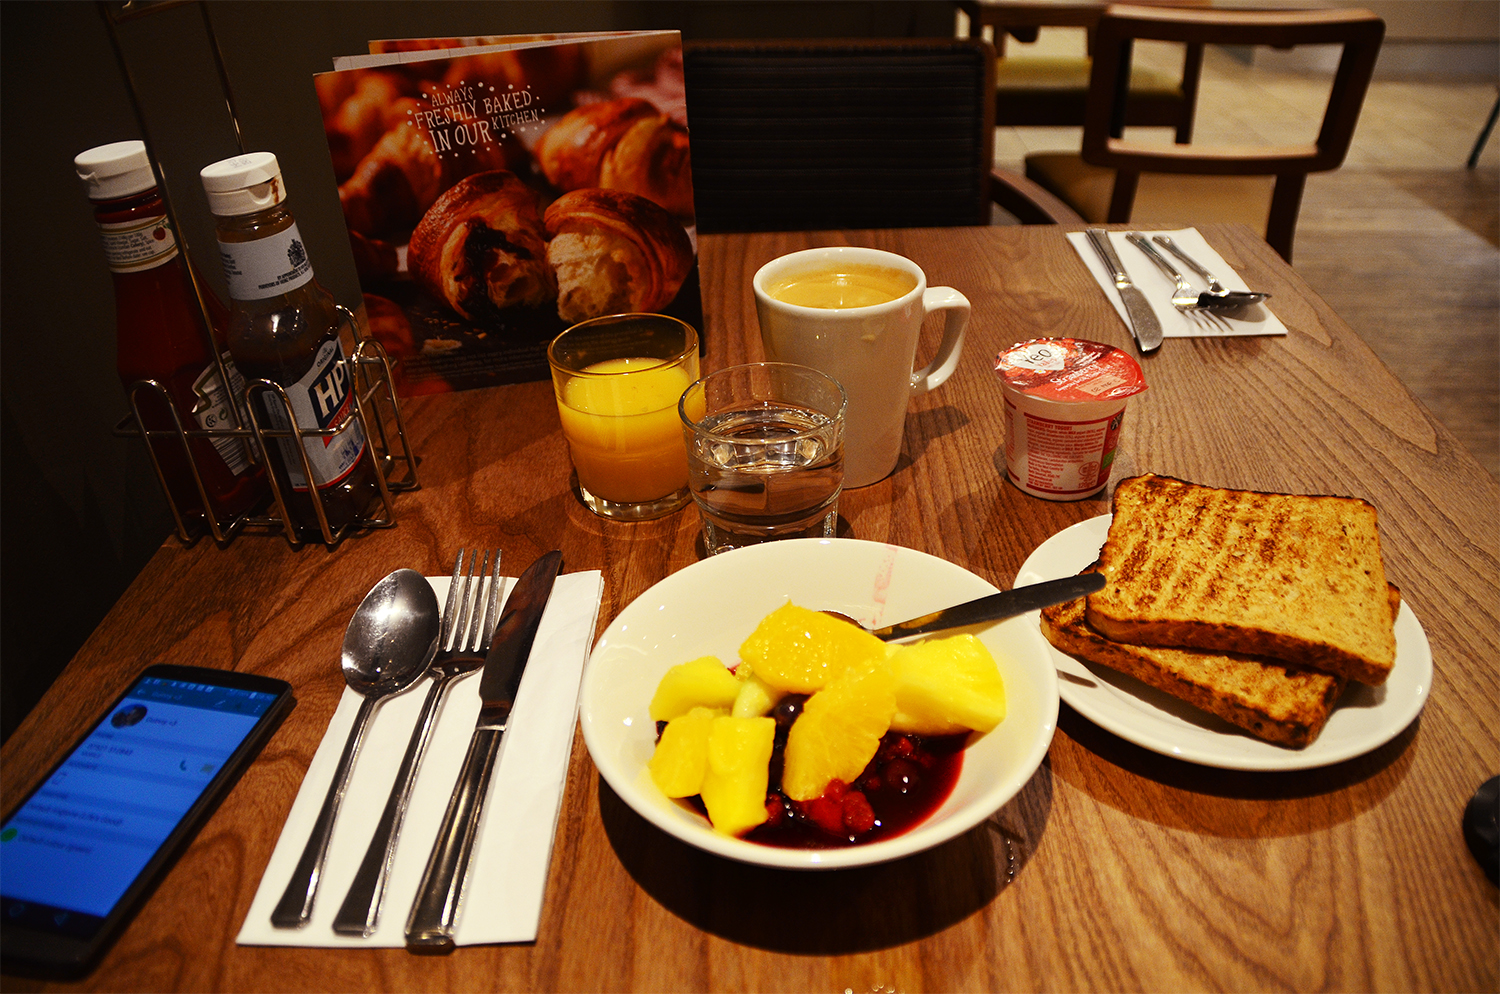 Breakfast at the Premier Inn in Holborn, review